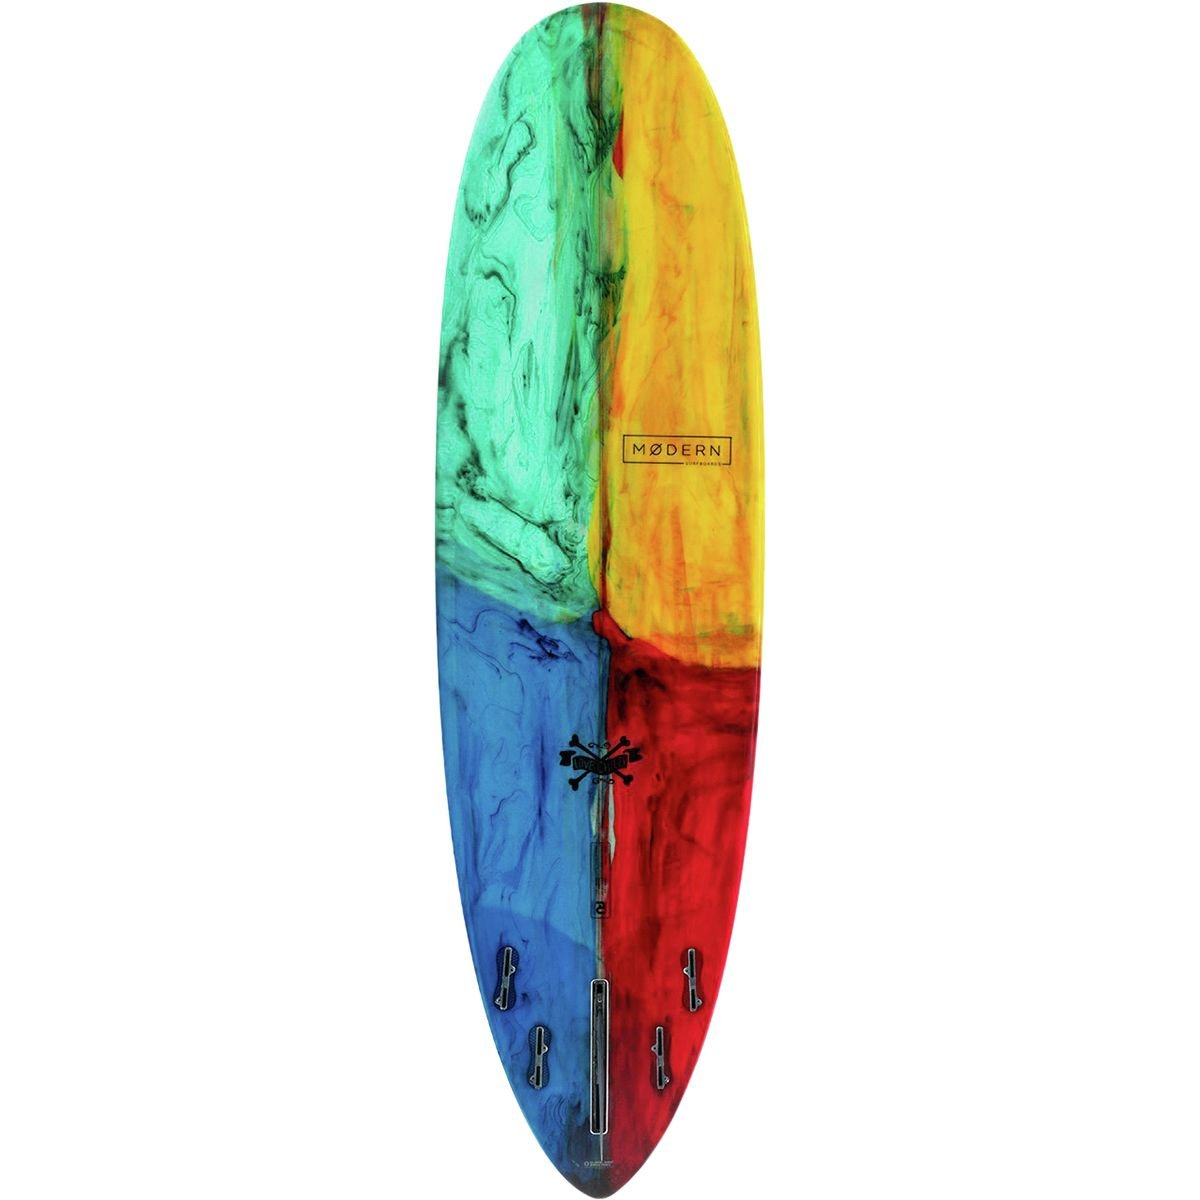 Amazon.com : Modern Surfboards Love Child PU Surfboard Kaleidoscope Tint, 6ft 4in : Sports & Outdoors